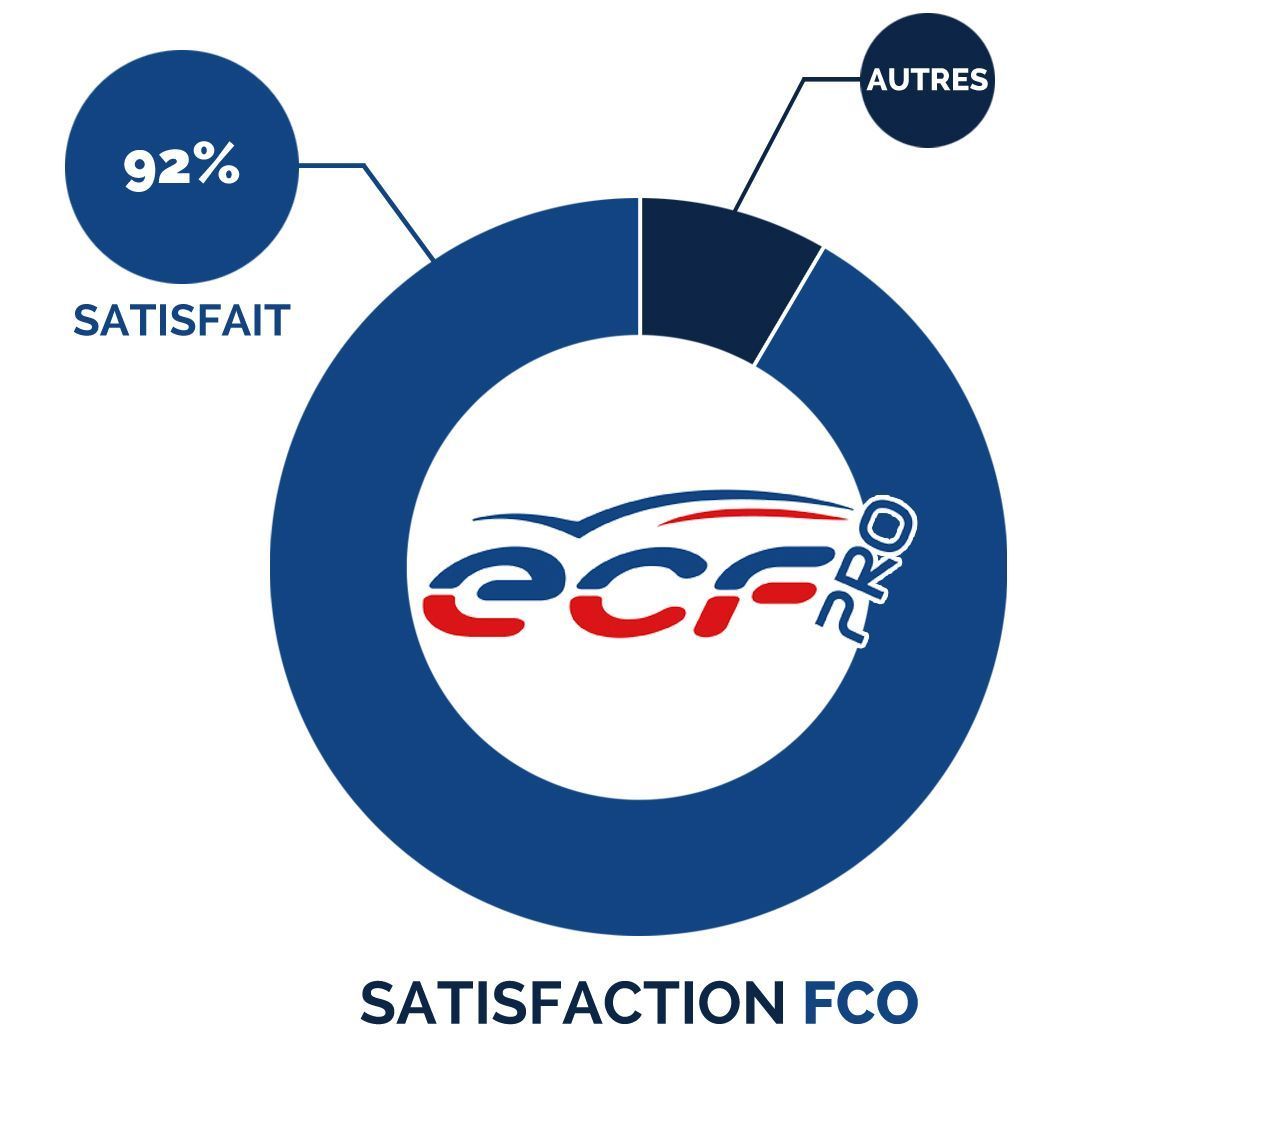 Satisfaction FCO